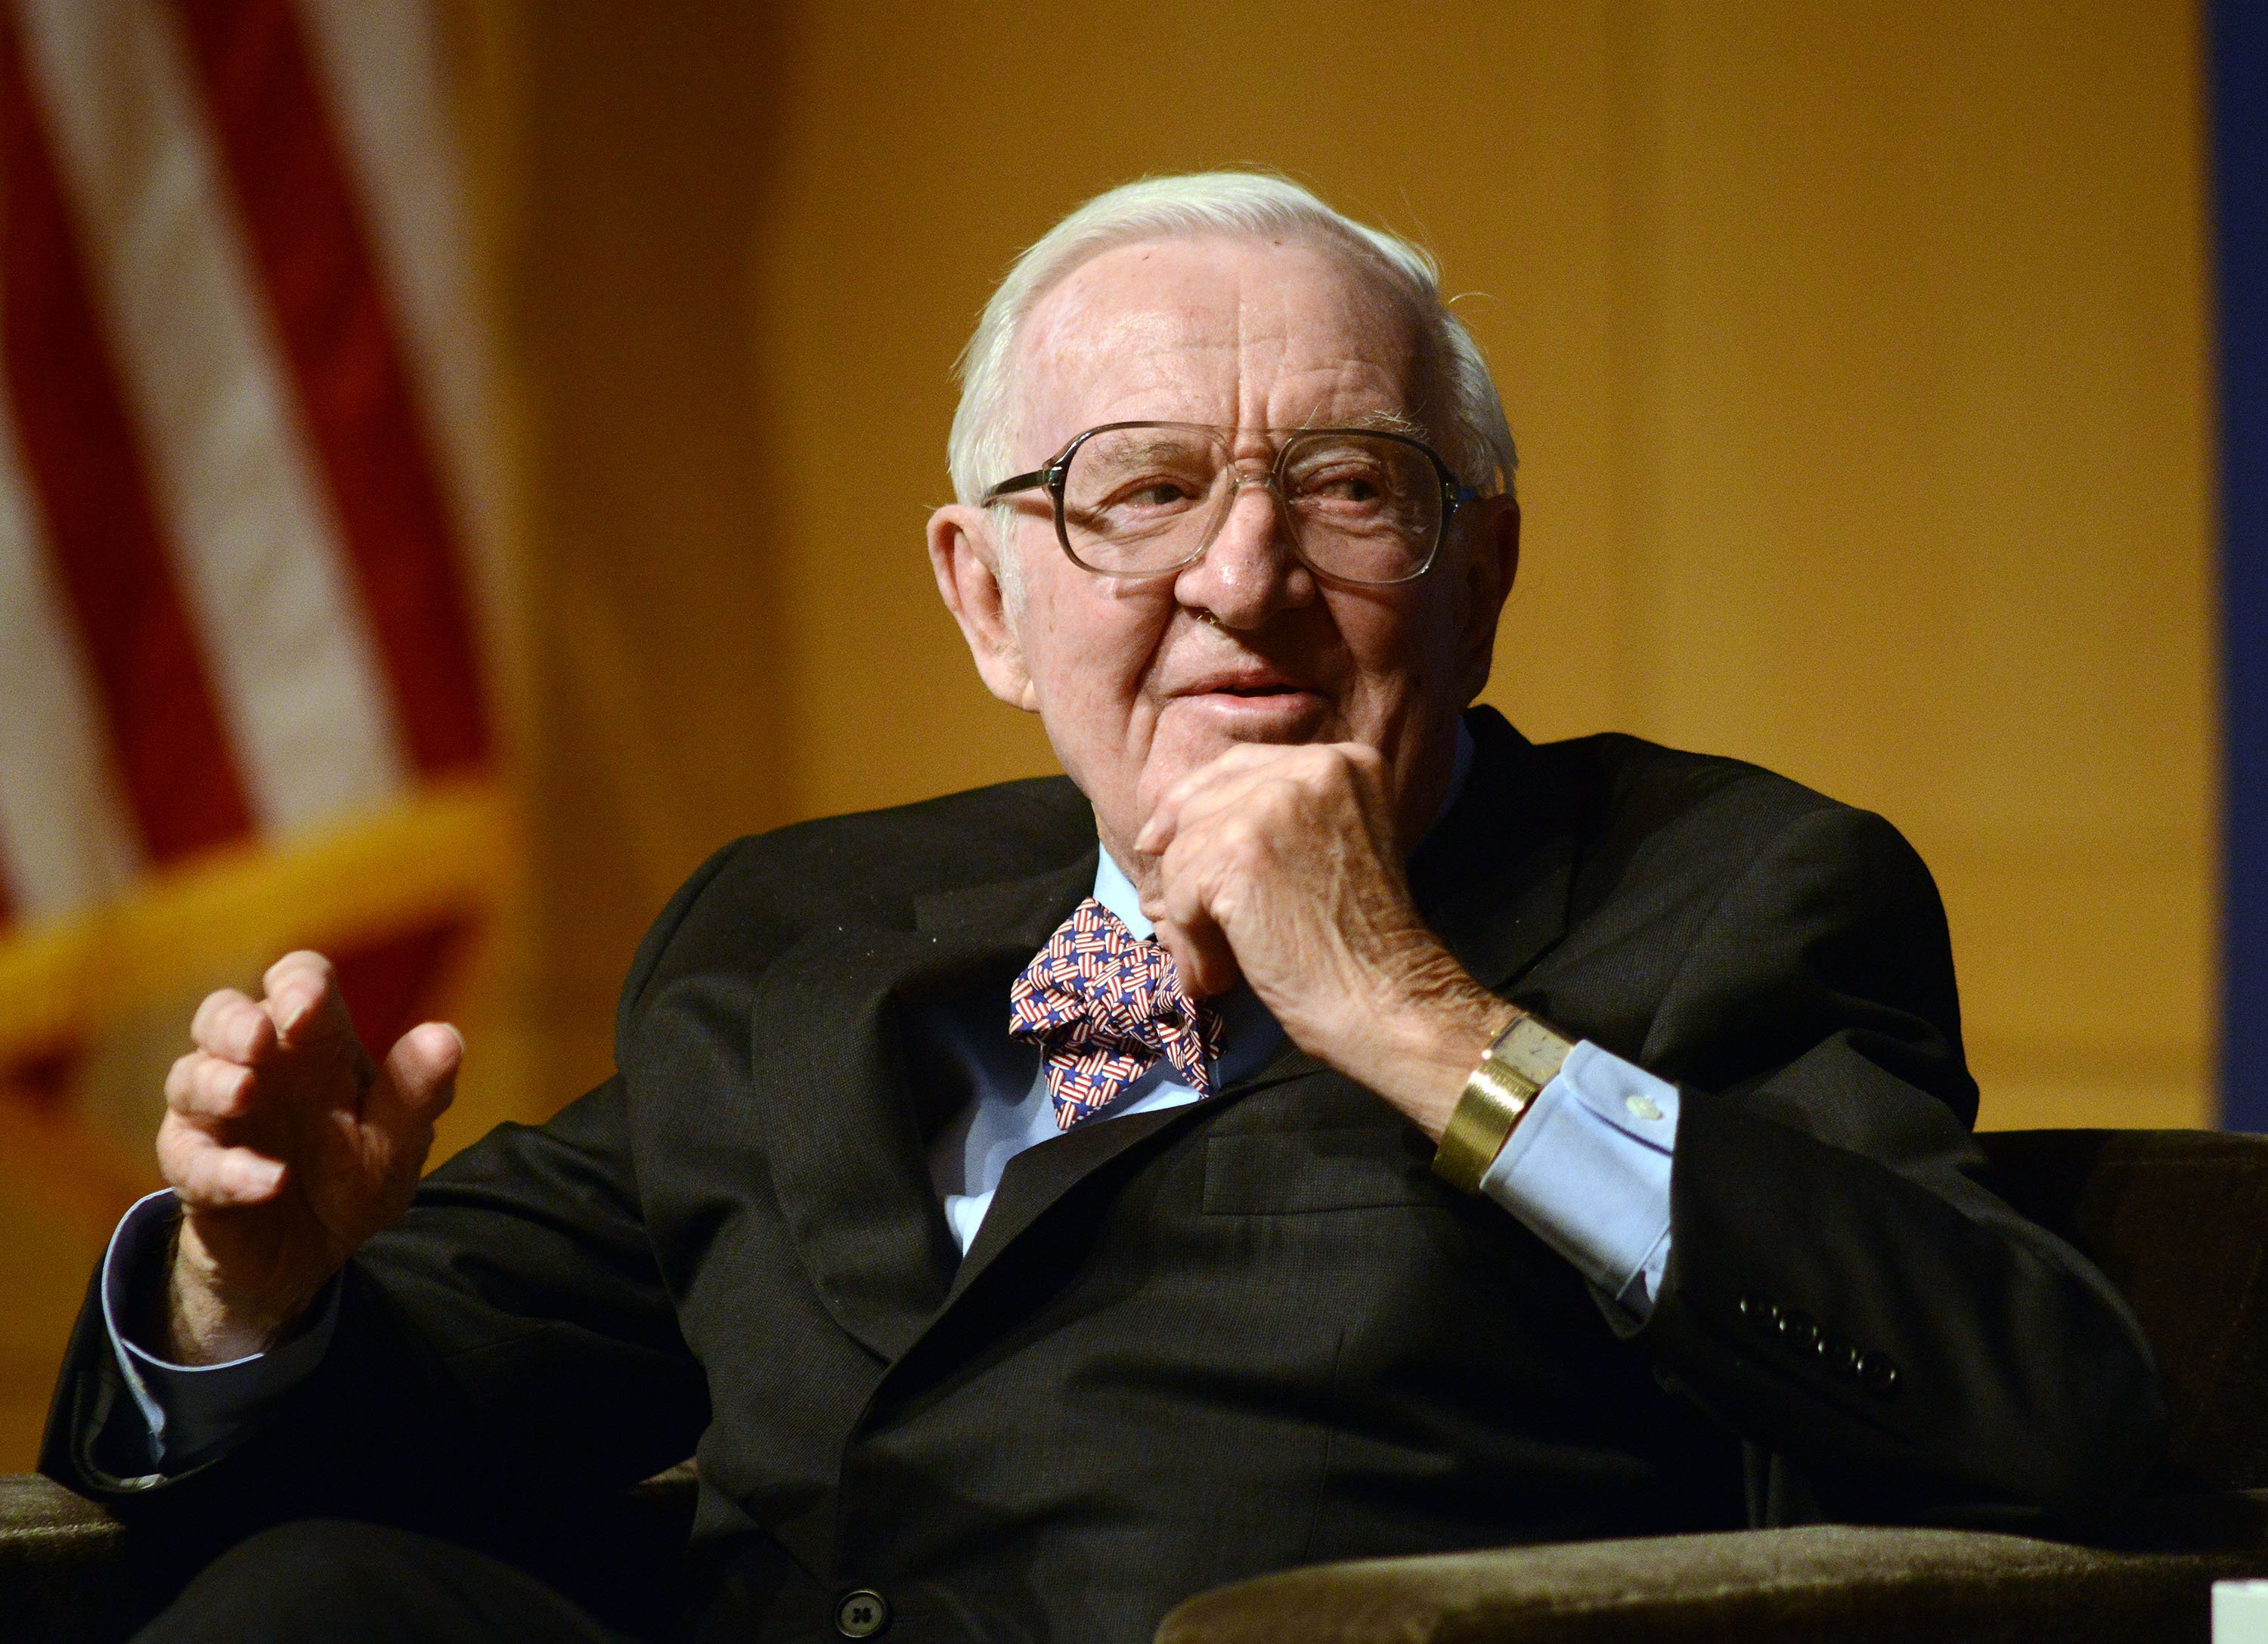 Former Justice John Paul Stevens traveled to Portugal at age 99, Ginsburg reveals at his funeral